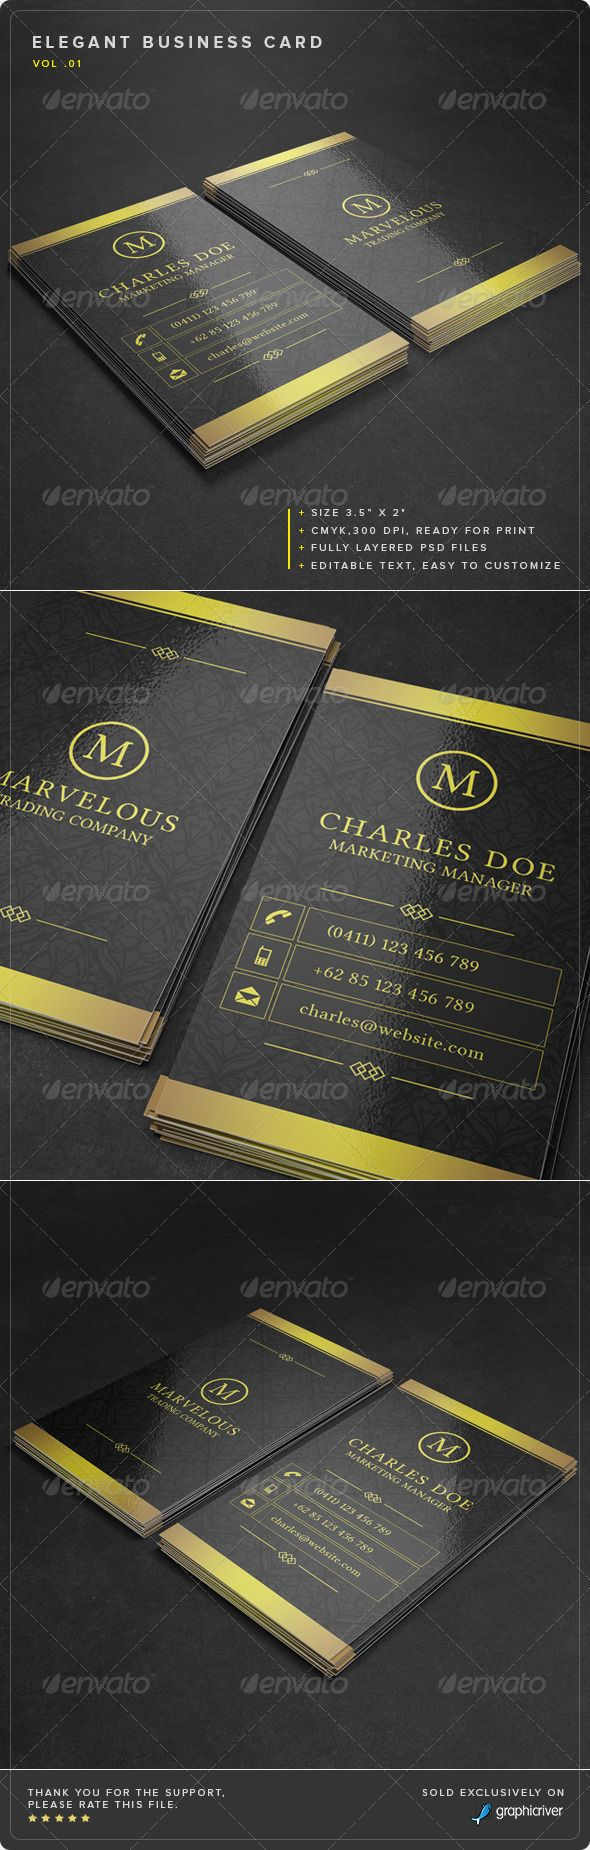 26 best design - business cards images on Pinterest | Corporate ...